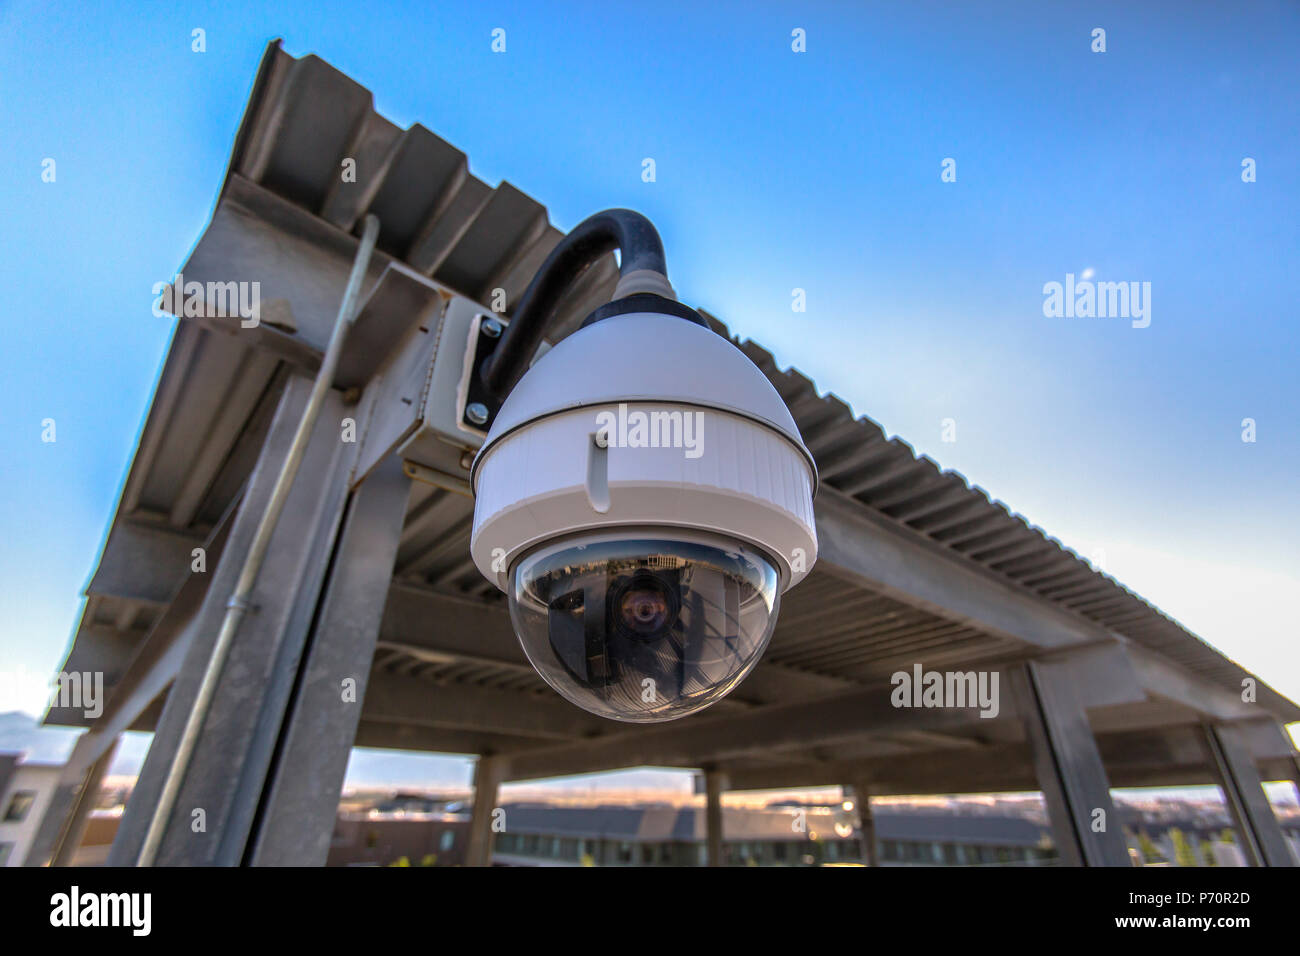 White dome security camera in business lot - Stock Image